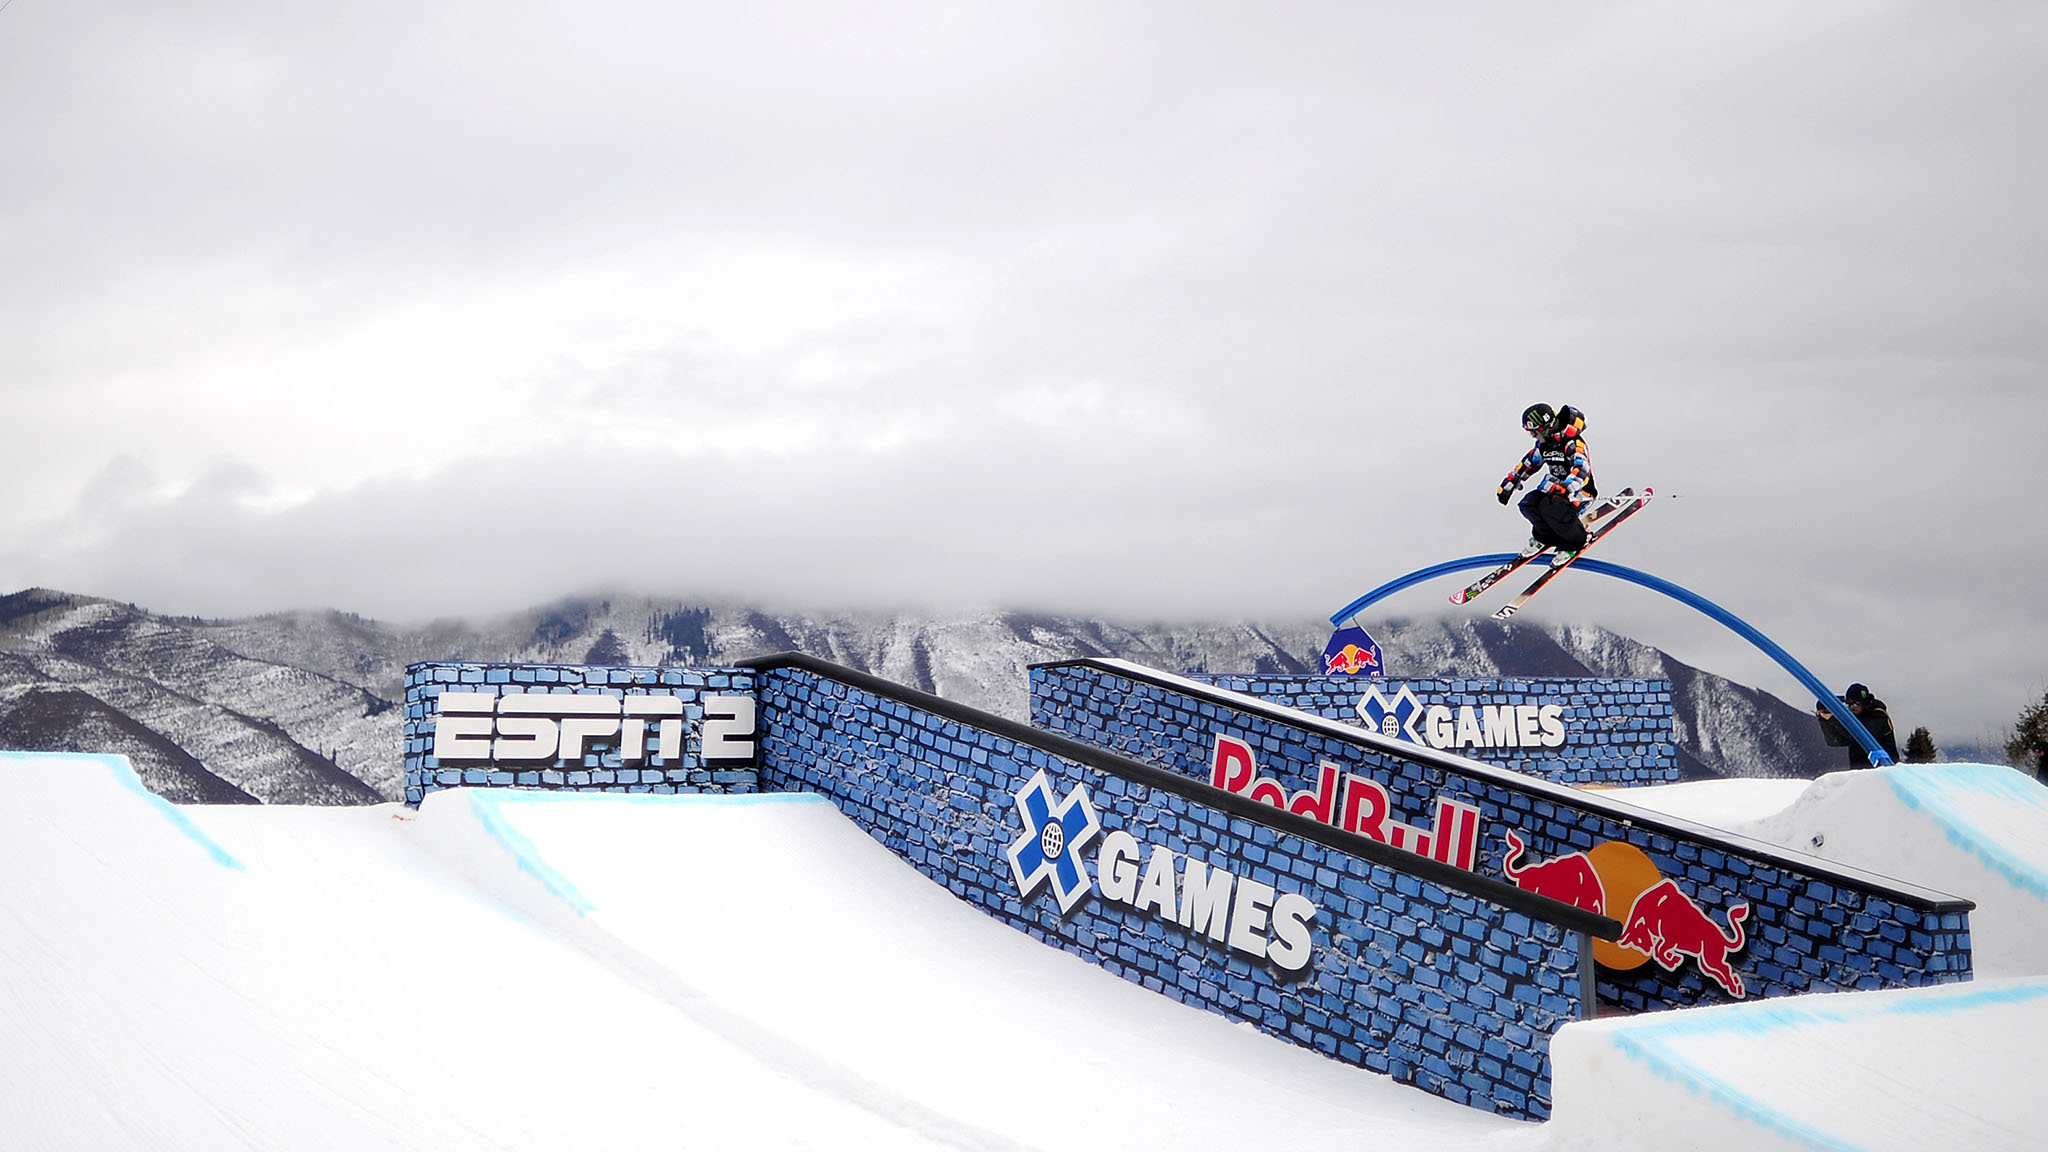 James Woods bounced back after a crash on his first run to earn the highest score during Ski Slopestyle eliminations.